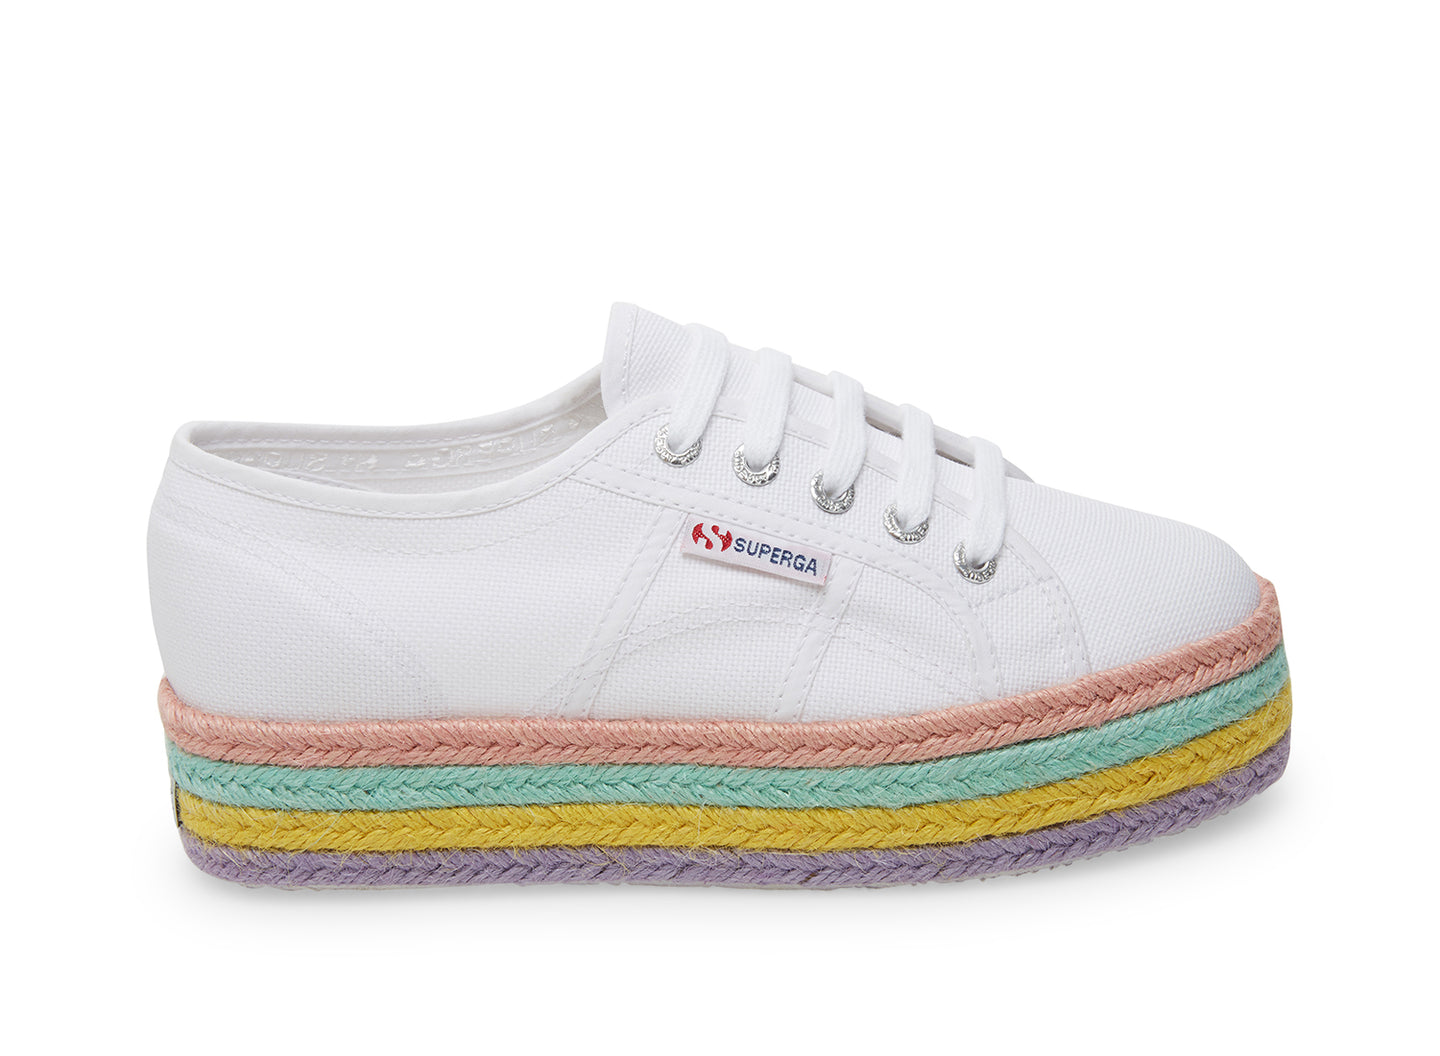 2790 COTCOLOROPEW PASTEL MULTI - Women's